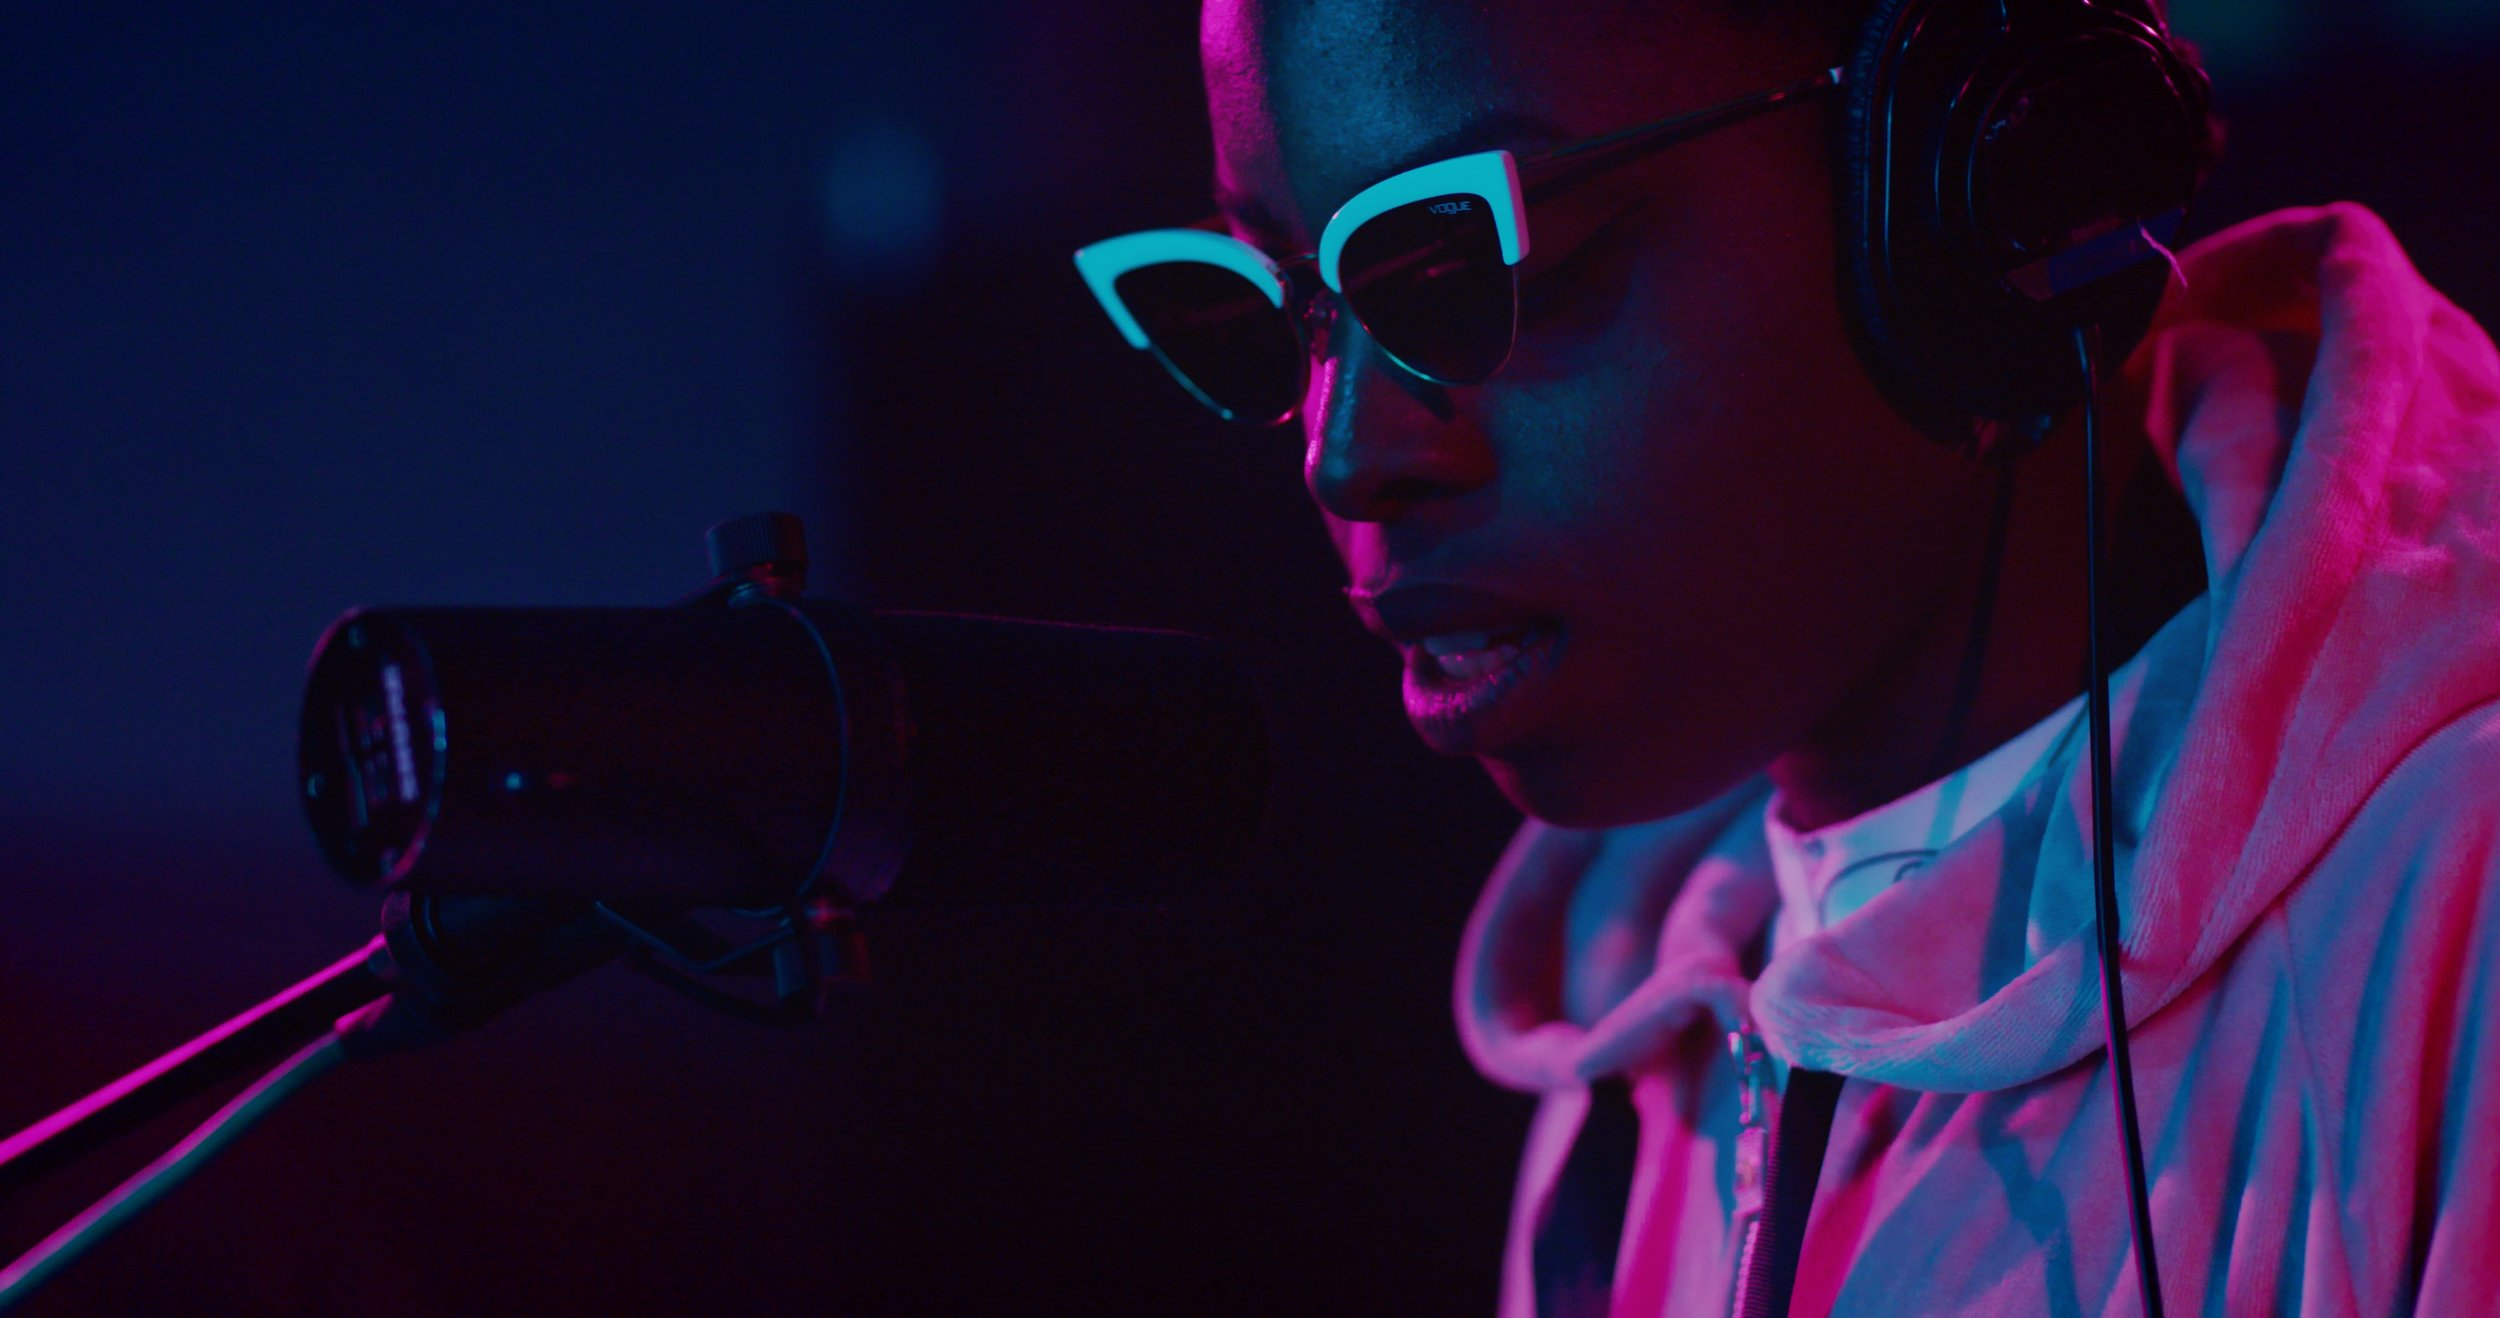 MY SOUND MY STYLE - Live music sessions from Metropolis Studios